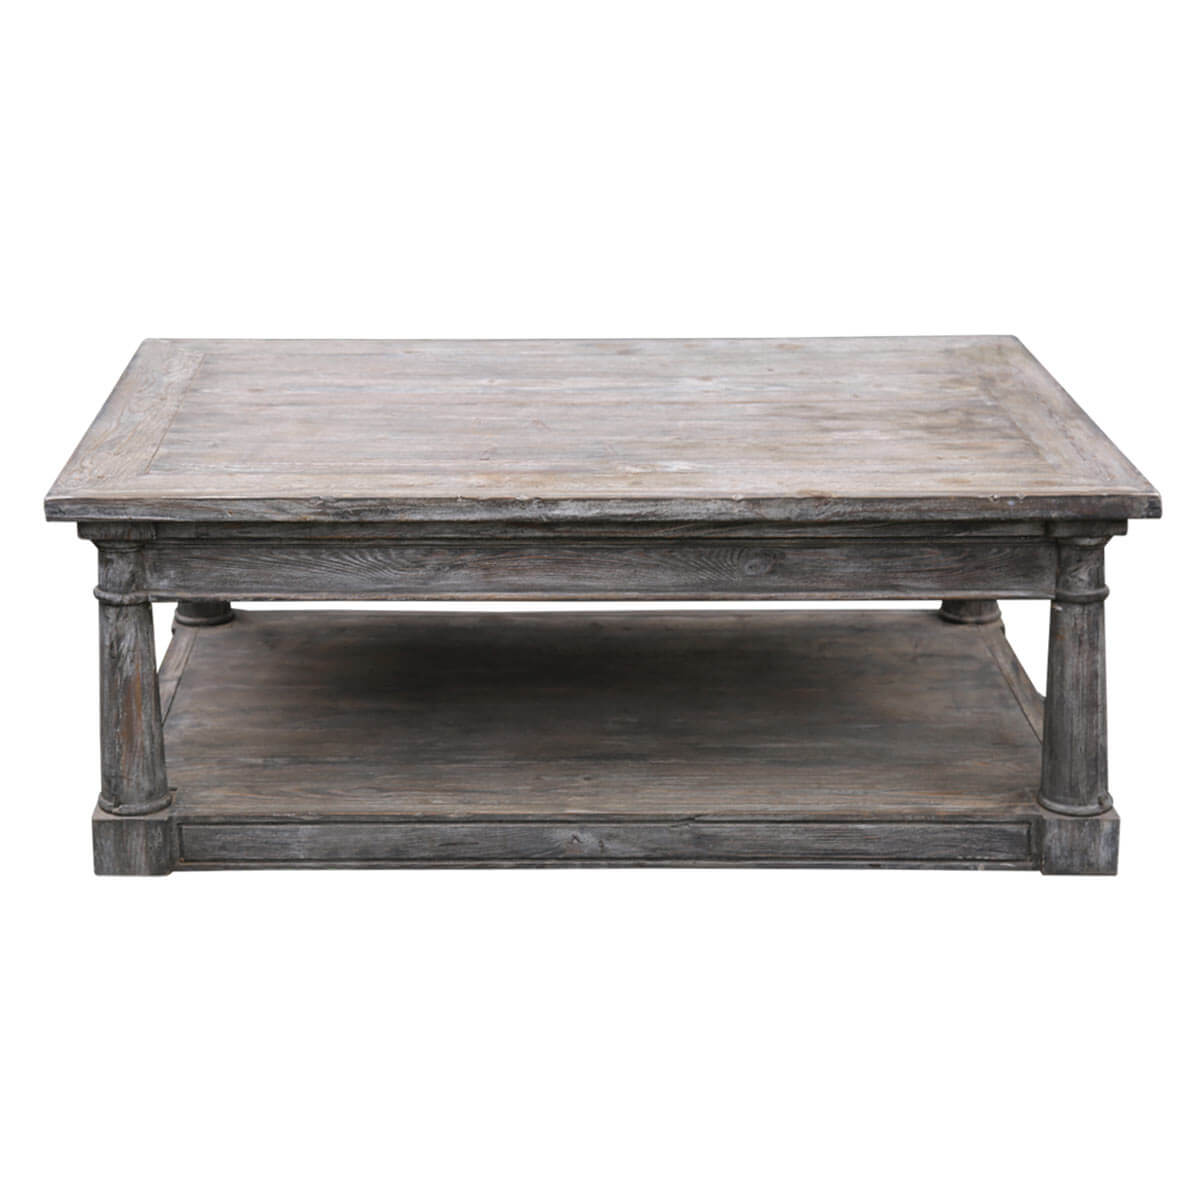 Chic Teak Coffee Table: Shabby Chic Rectangle Baluster Coffee Table Made Of Teak Wood